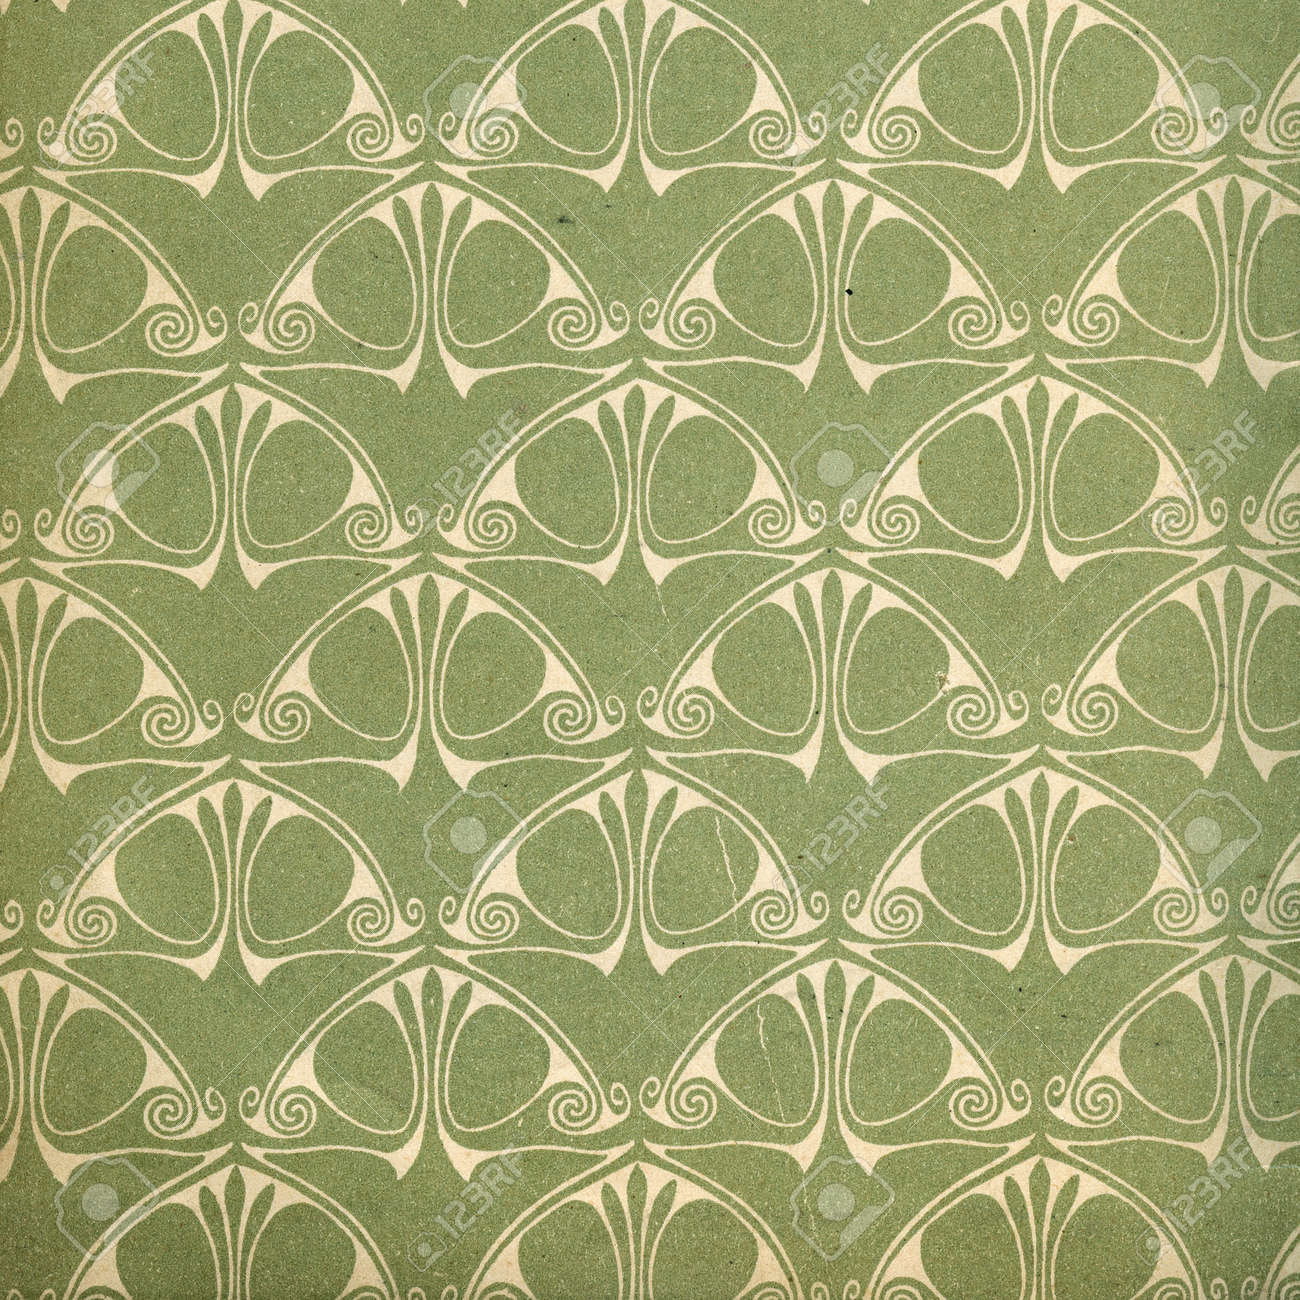 Fullsize Of Art Nouveau Wallpaper